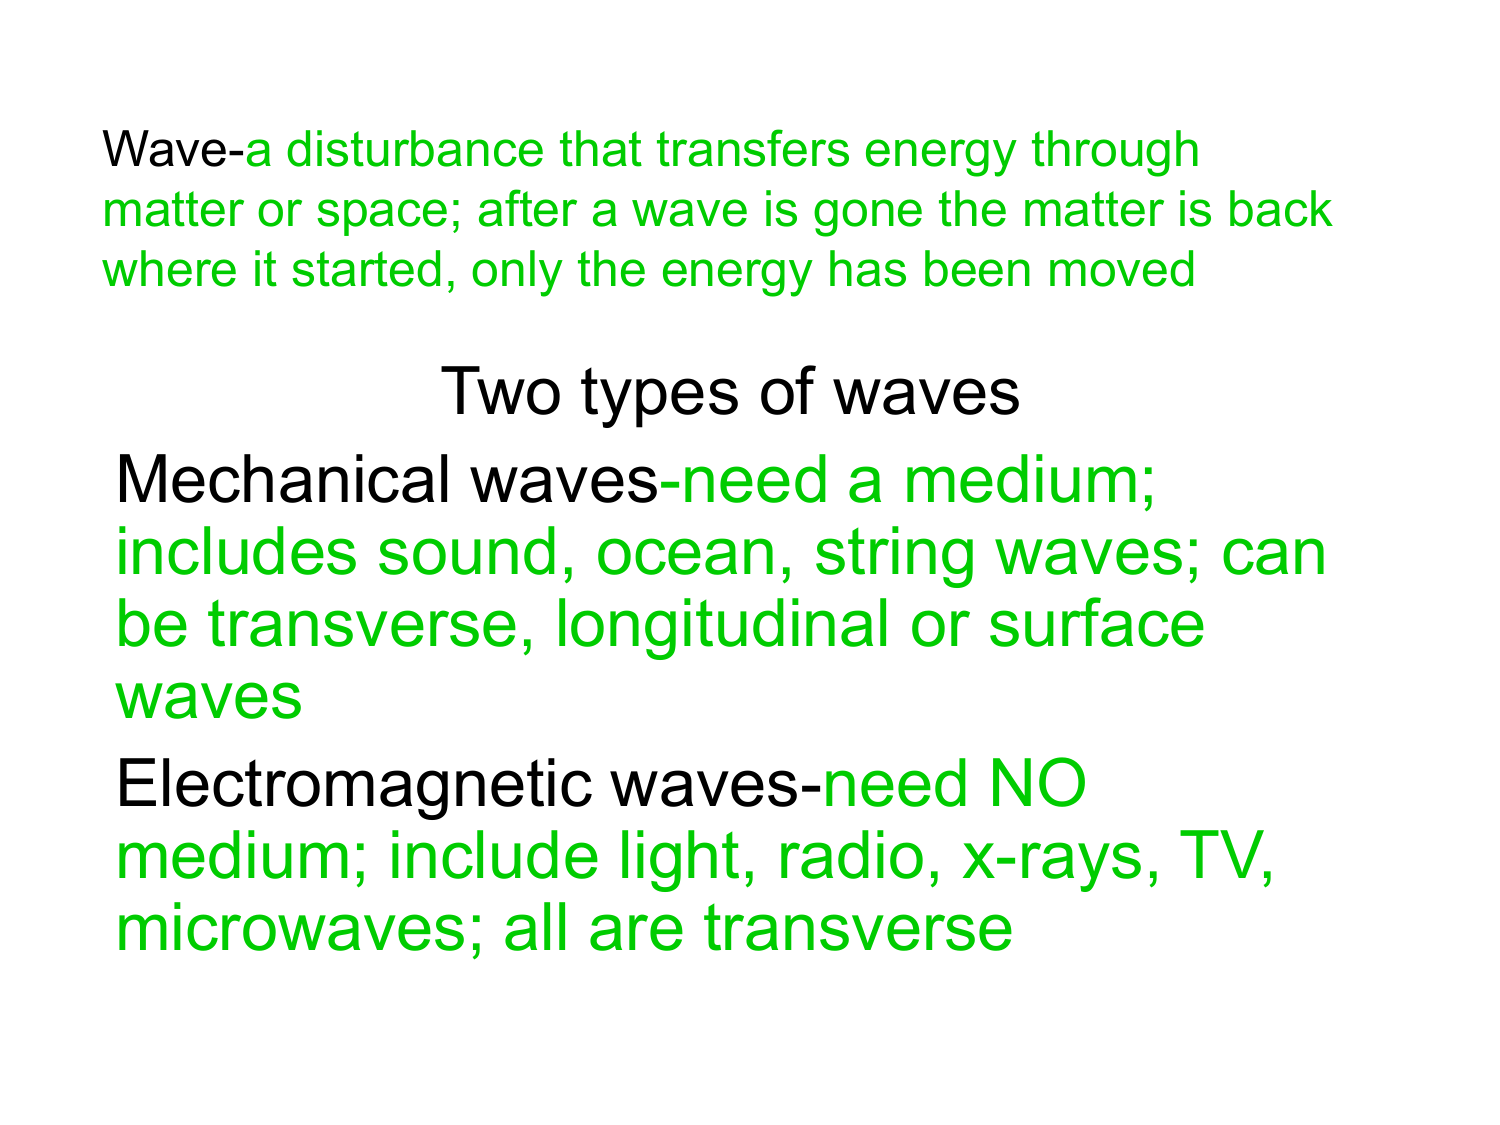 Wave A Disturbance That Transfers Energy Through Matter Or Space